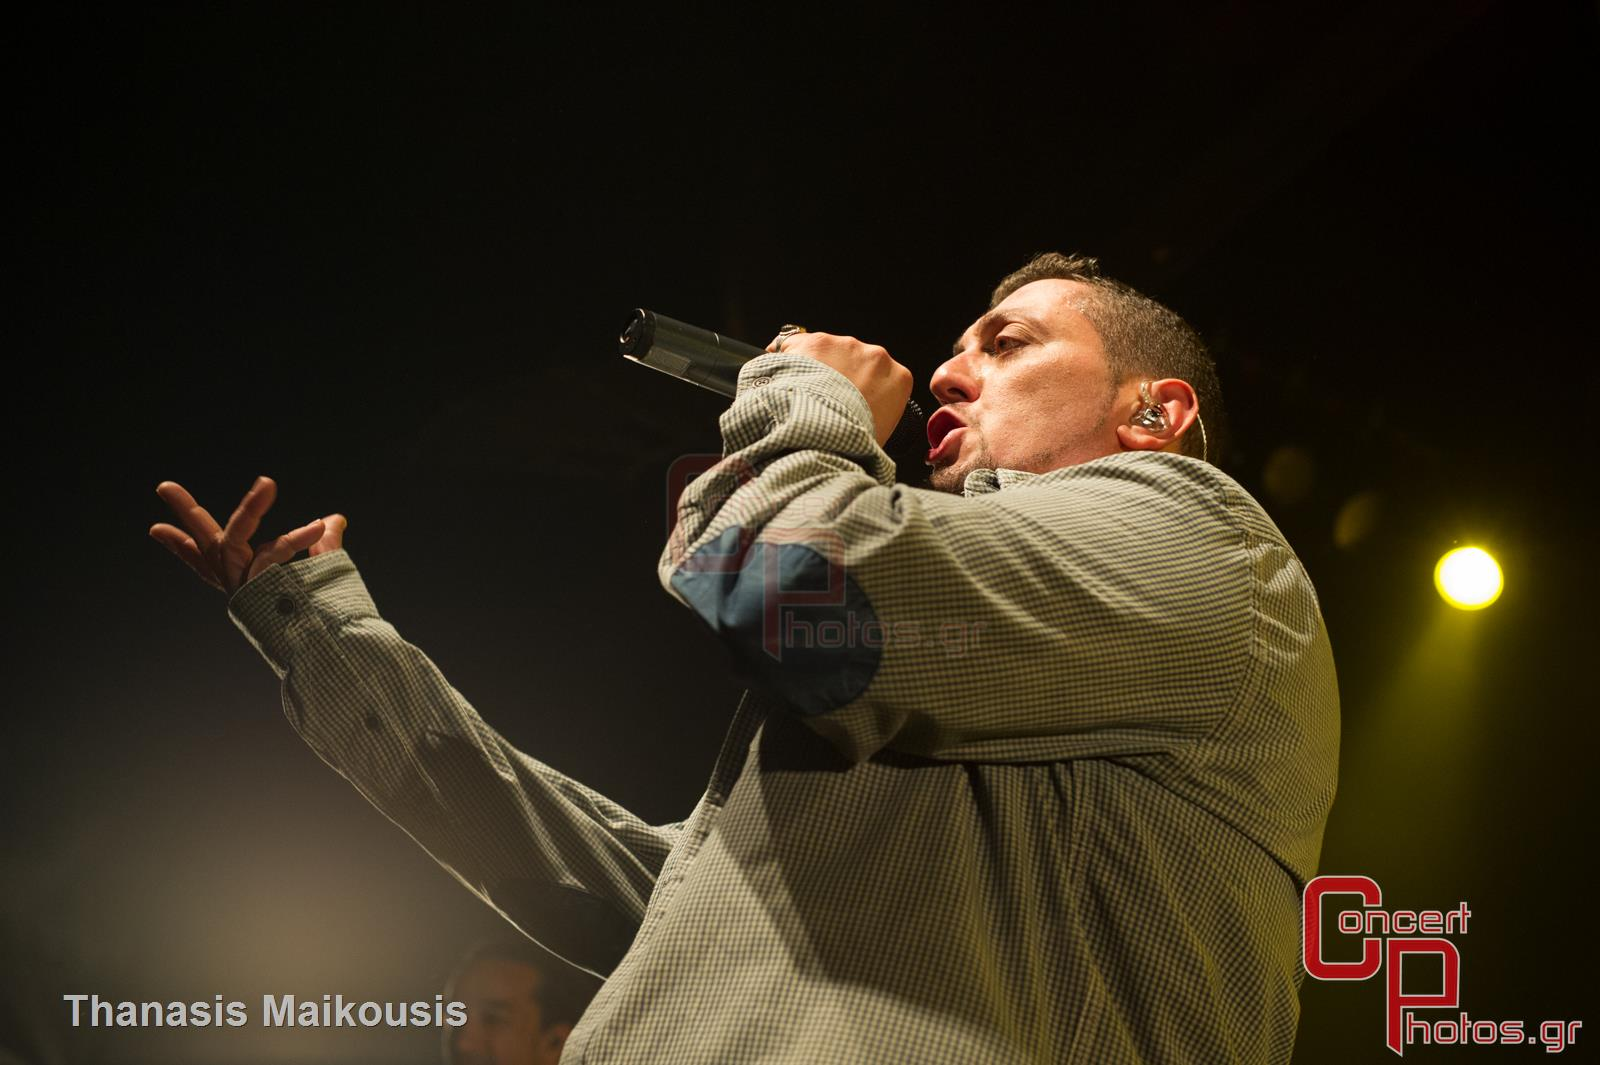 Dub Inc-Dub Inc photographer: Thanasis Maikousis - concertphotos_-5428